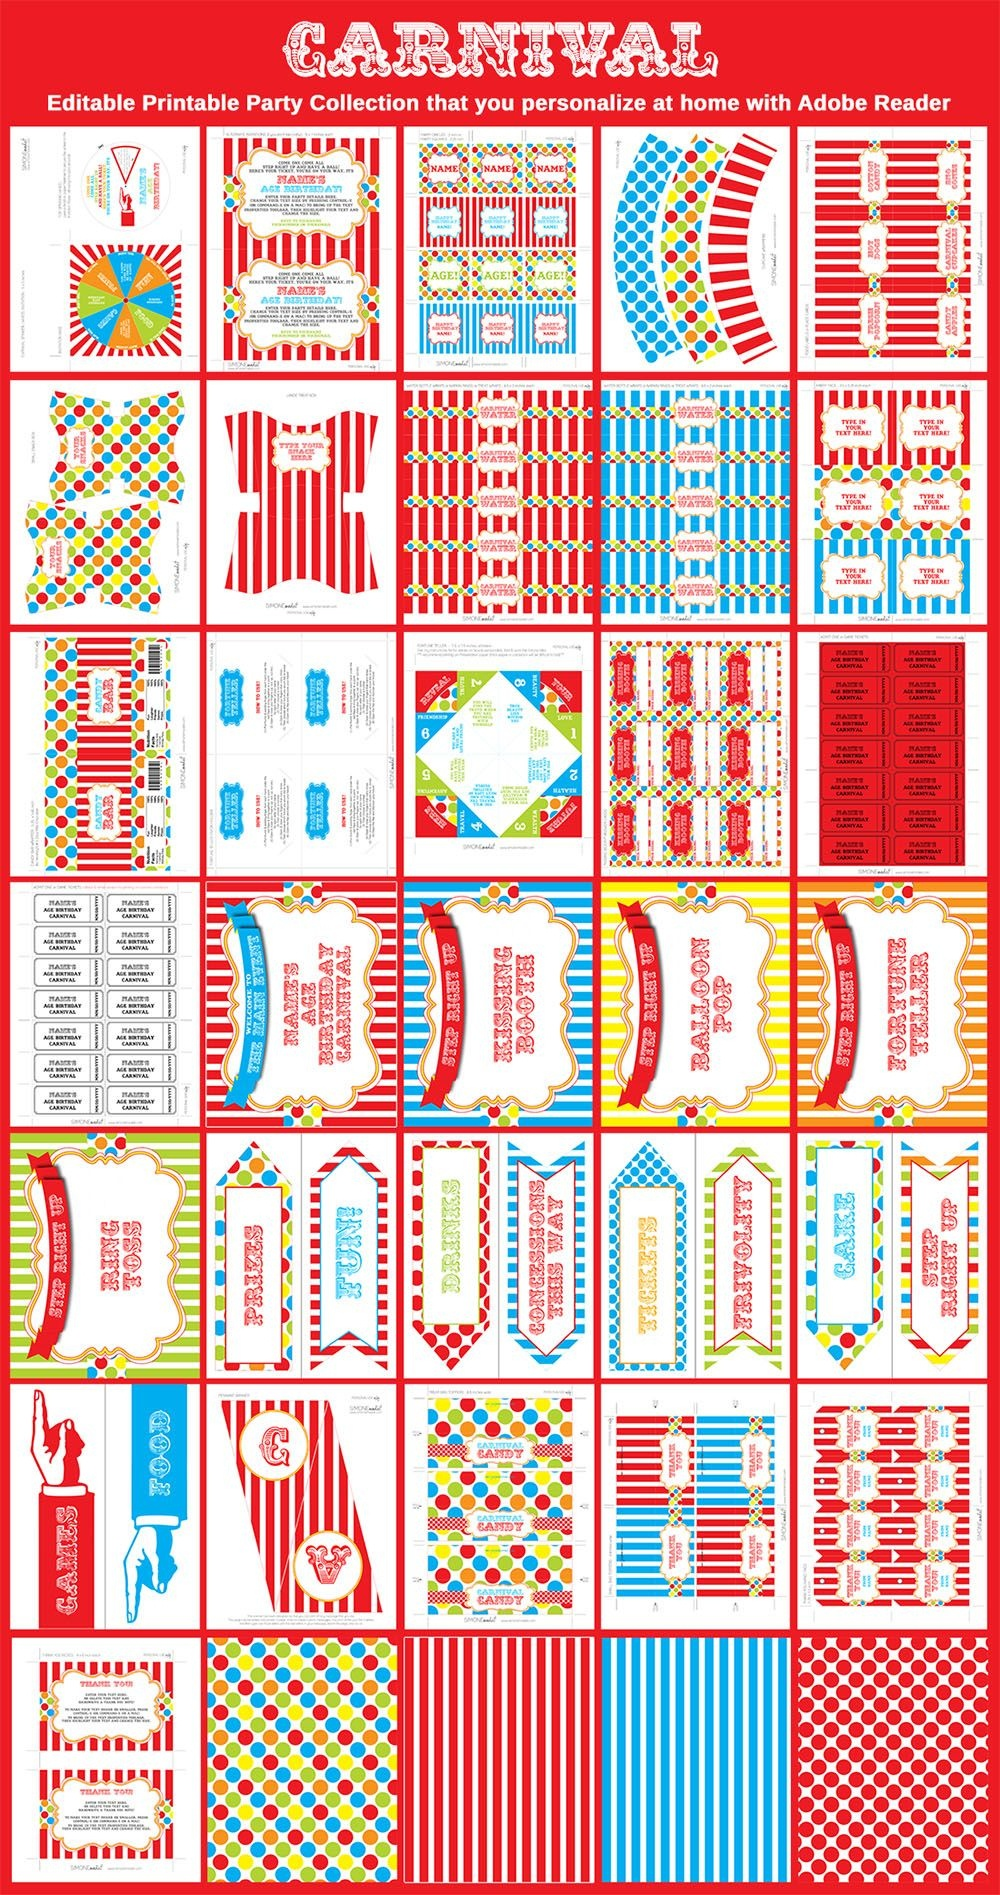 Carnival Party Printables, Invitations & Decorations – Colorful - Free Printable Carnival Decorations